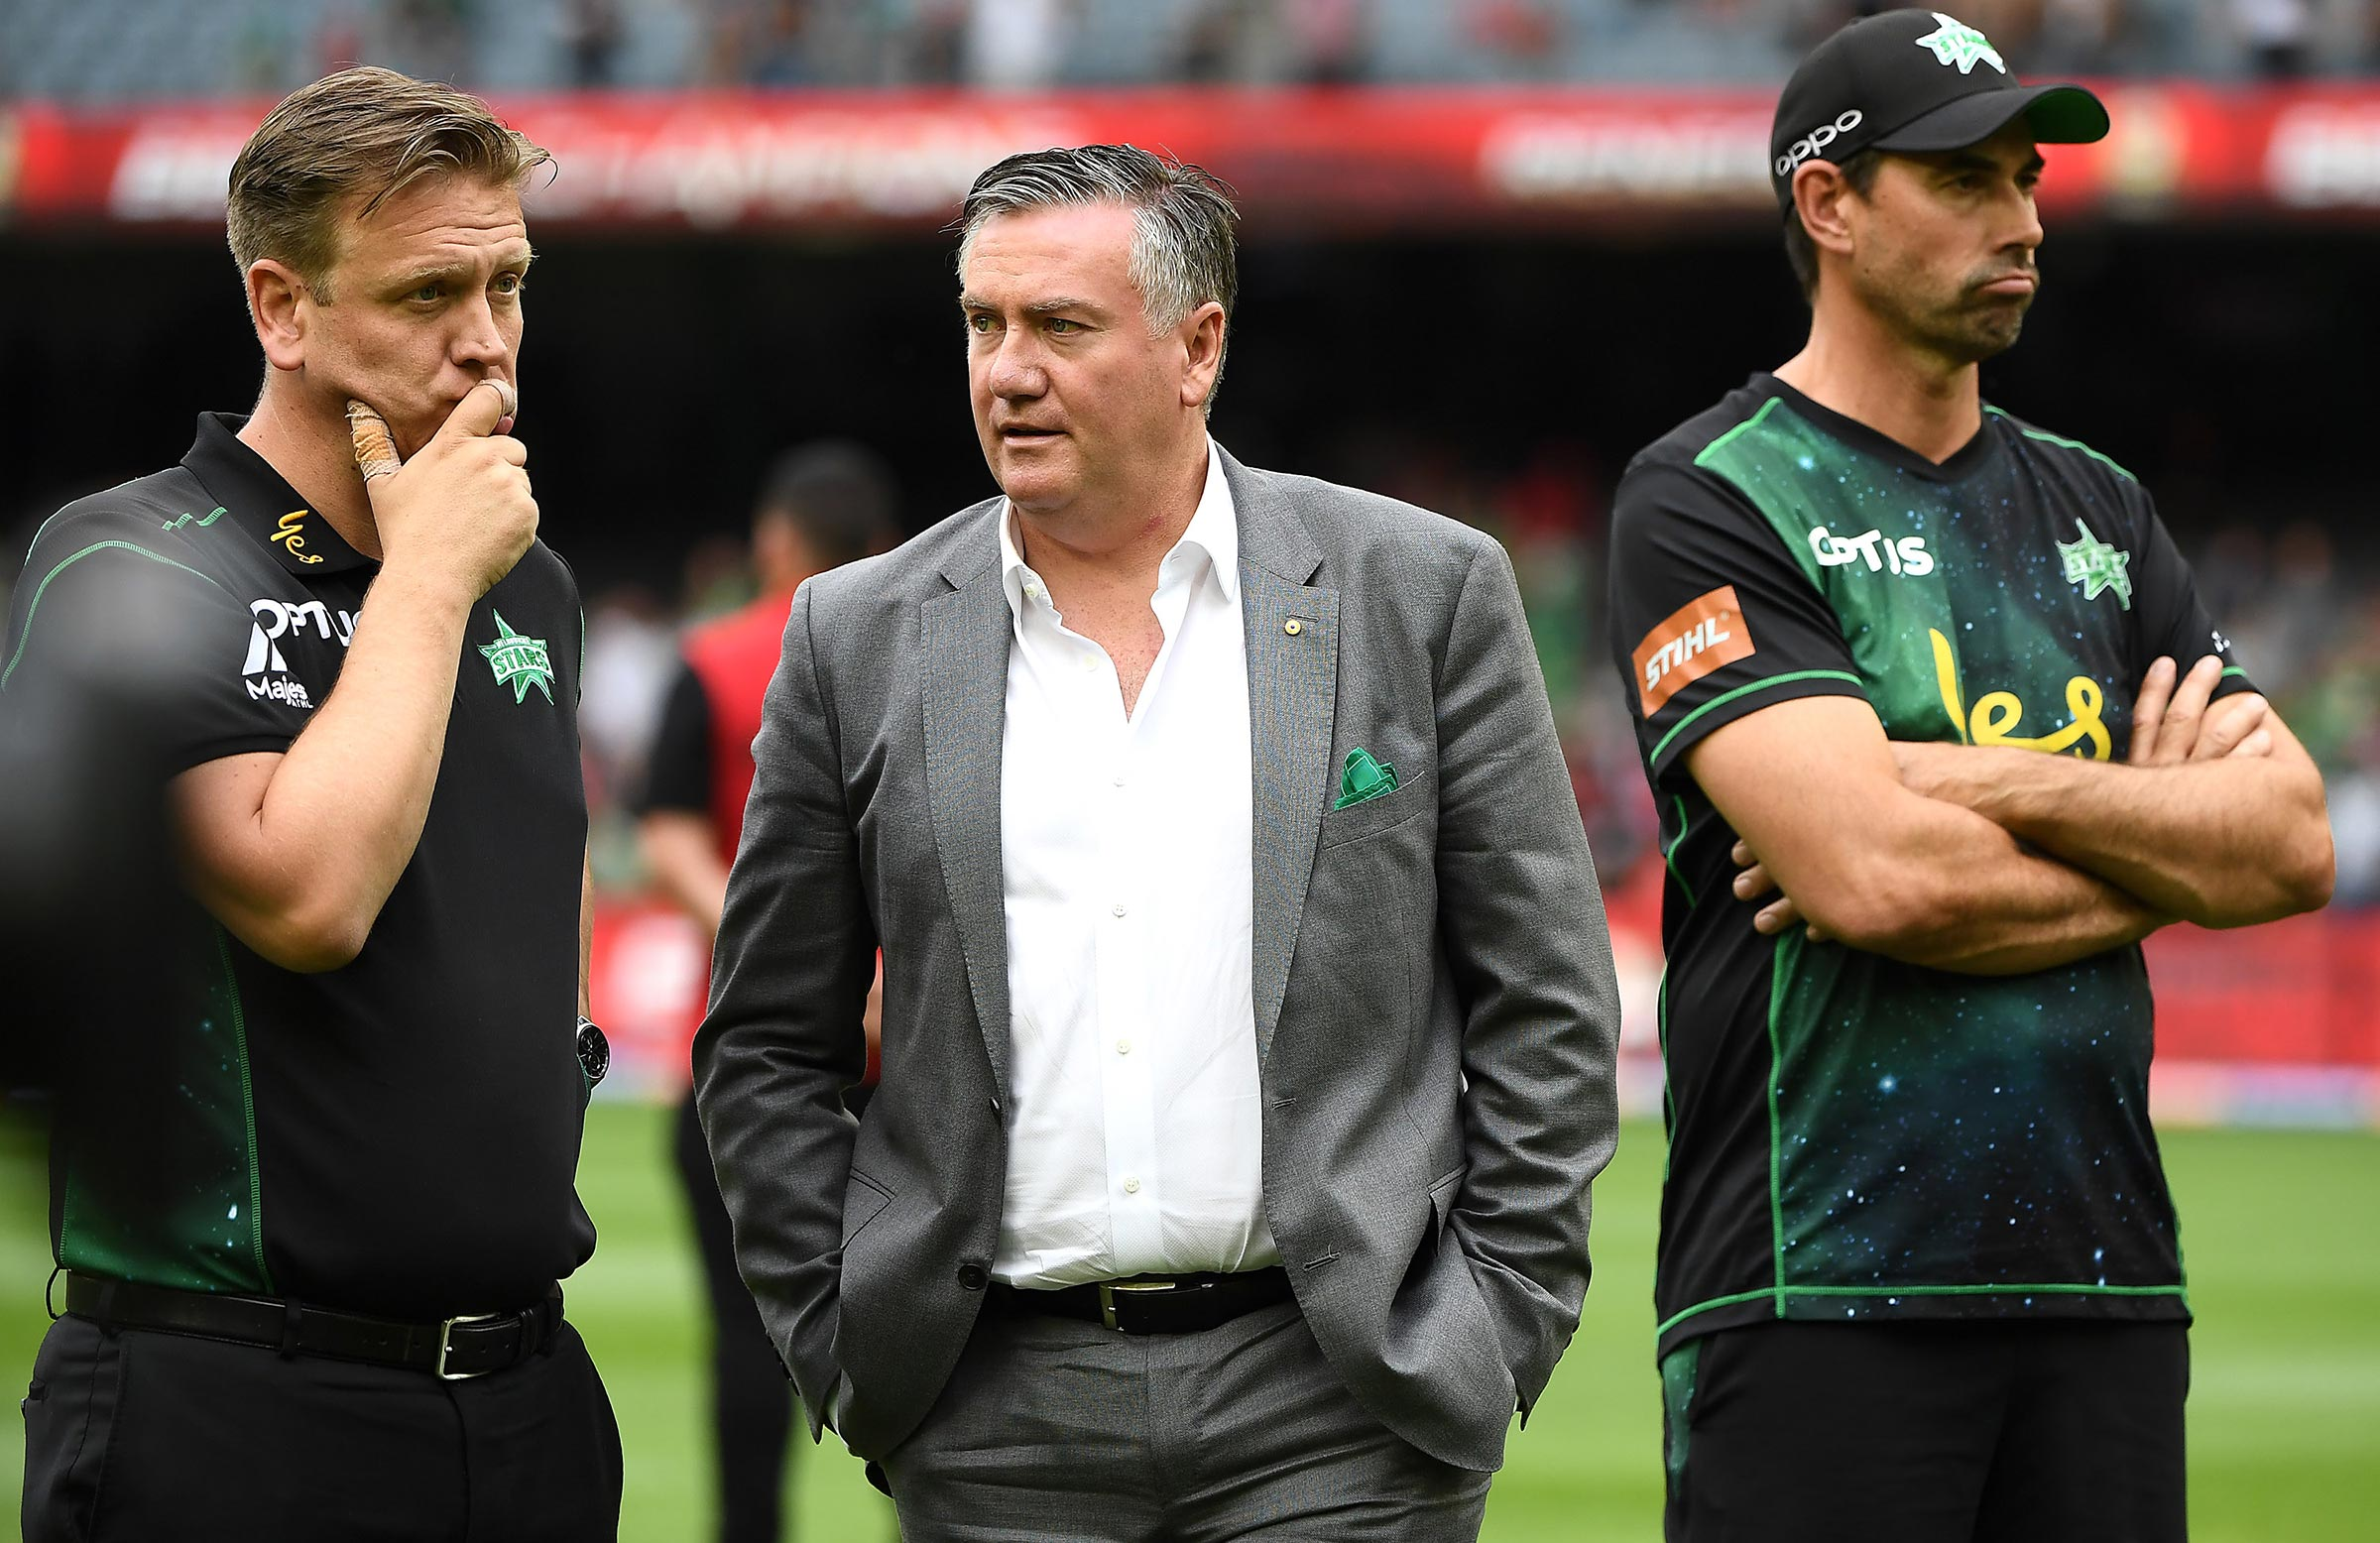 Clint Cooper, Eddie McGuire and Fleming after the BBL final // Getty